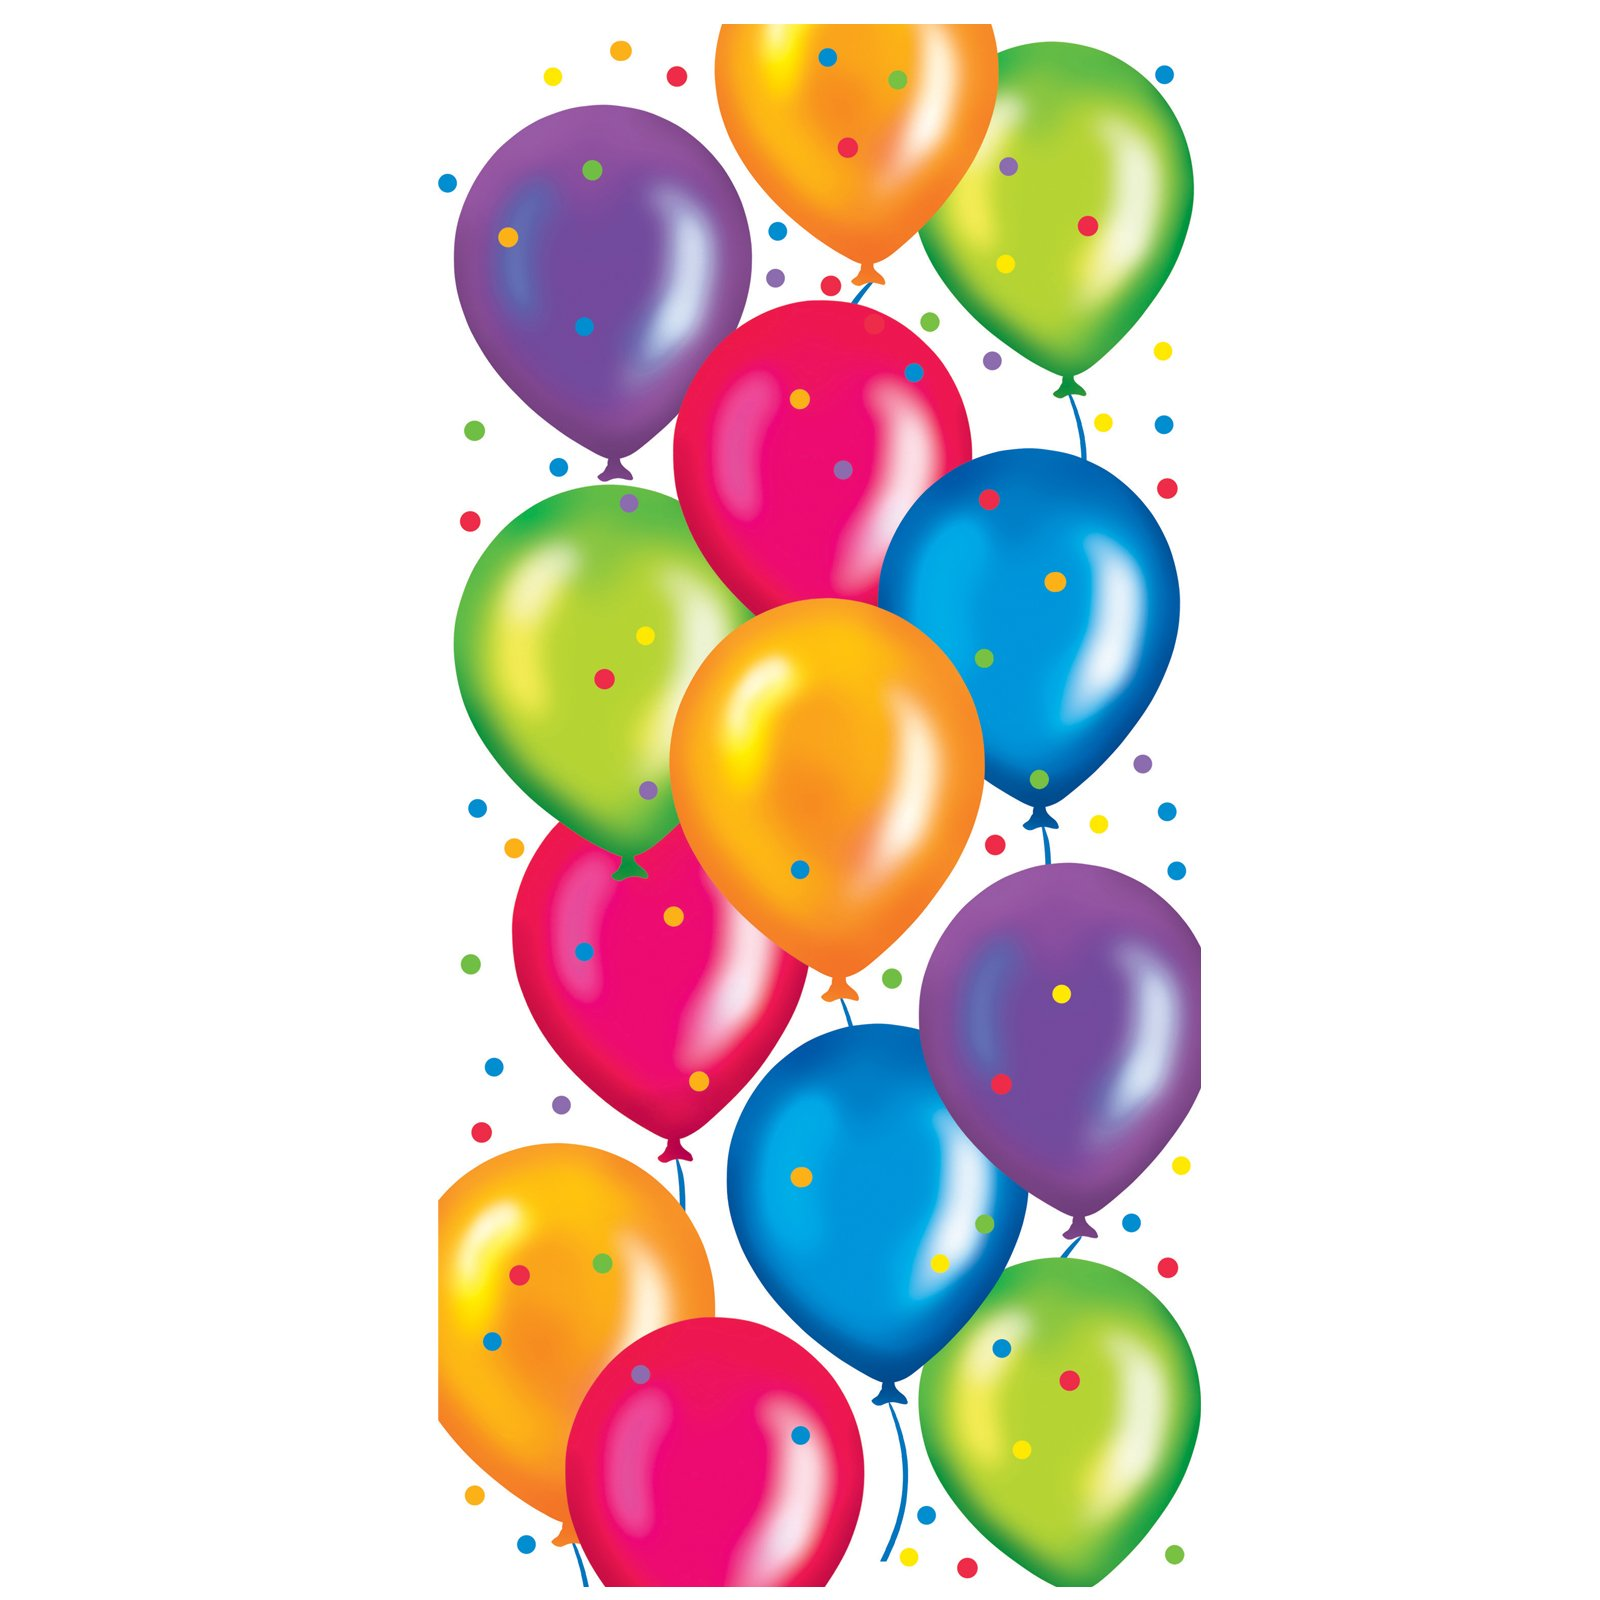 Free balloons clipart picture free download Free Cartoon Birthday Balloons, Download Free Clip Art, Free Clip ... picture free download